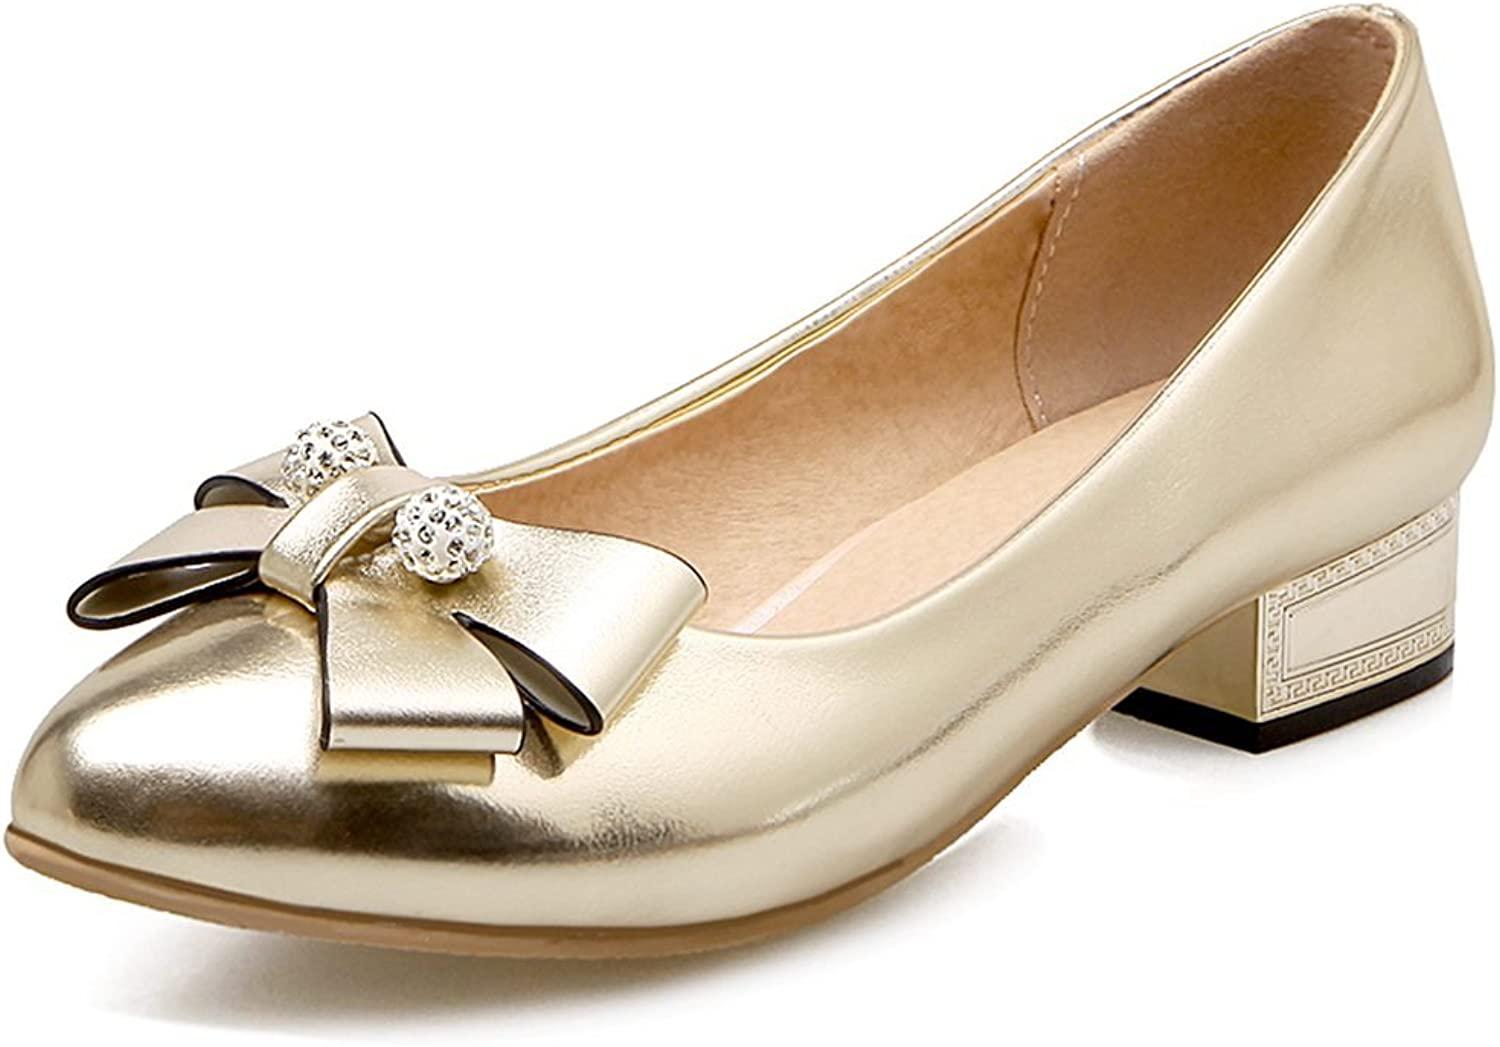 KingRover Women's Elegant Bow Pointed Toe Low Cut Slip on Chunky Heel Pumps shoes